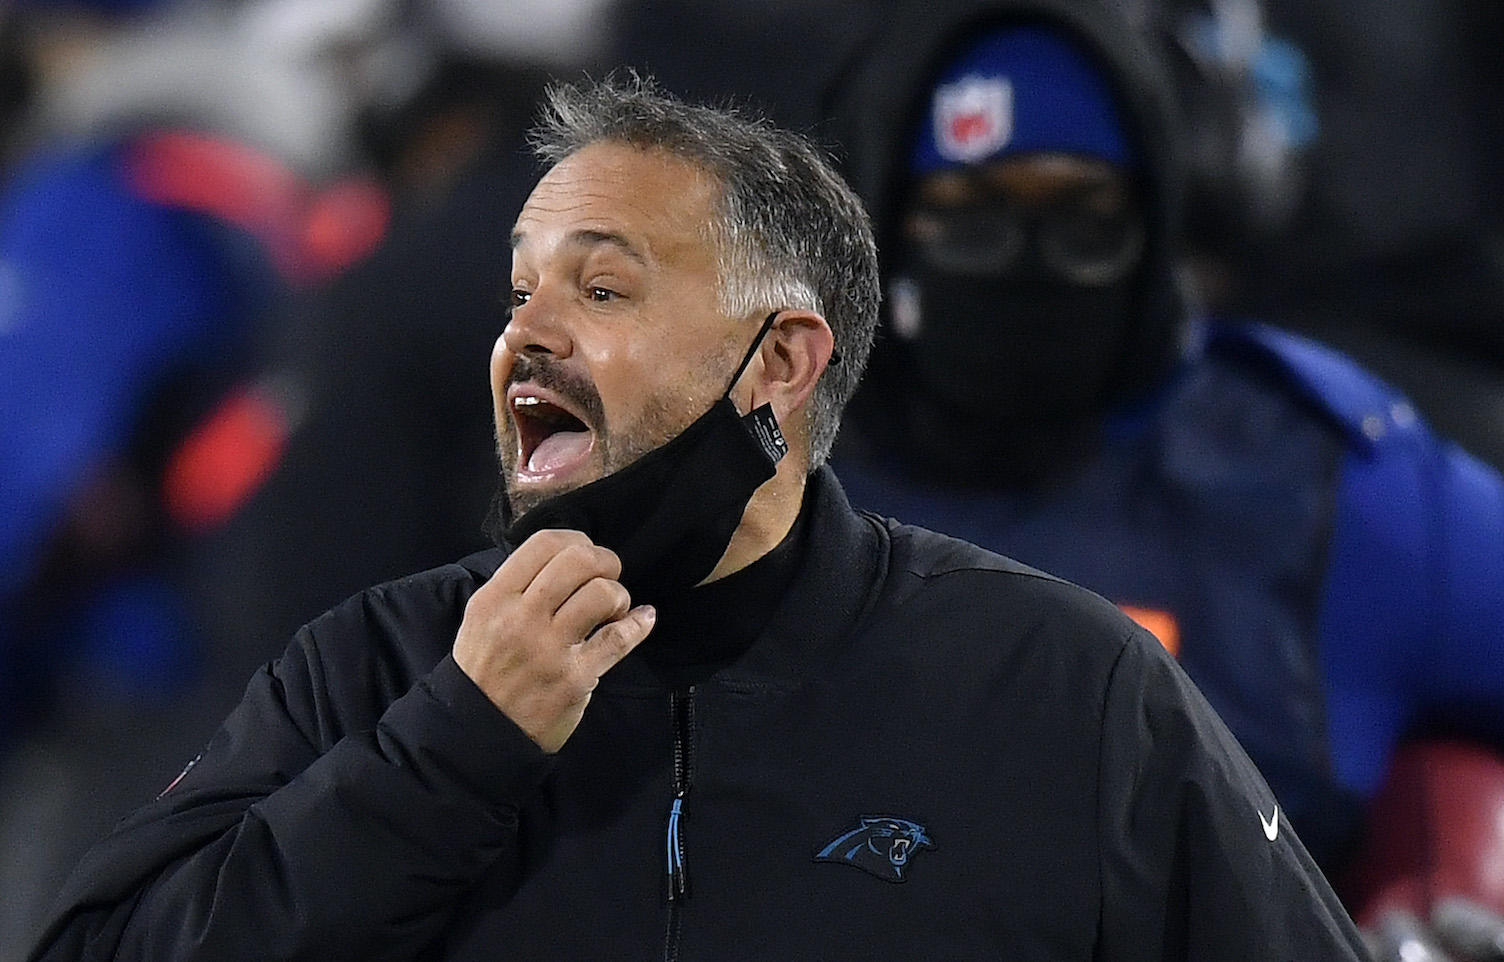 GREEN BAY, WISCONSIN - DECEMBER 19: Head coach Matt Rhule of the Carolina Panthers reacts from the sidelines during the first half of the game against the Green Bay Packers at Lambeau Field on December 19, 2020 in Green Bay, Wisconsin. (Photo by Quinn Harris/Getty Images)